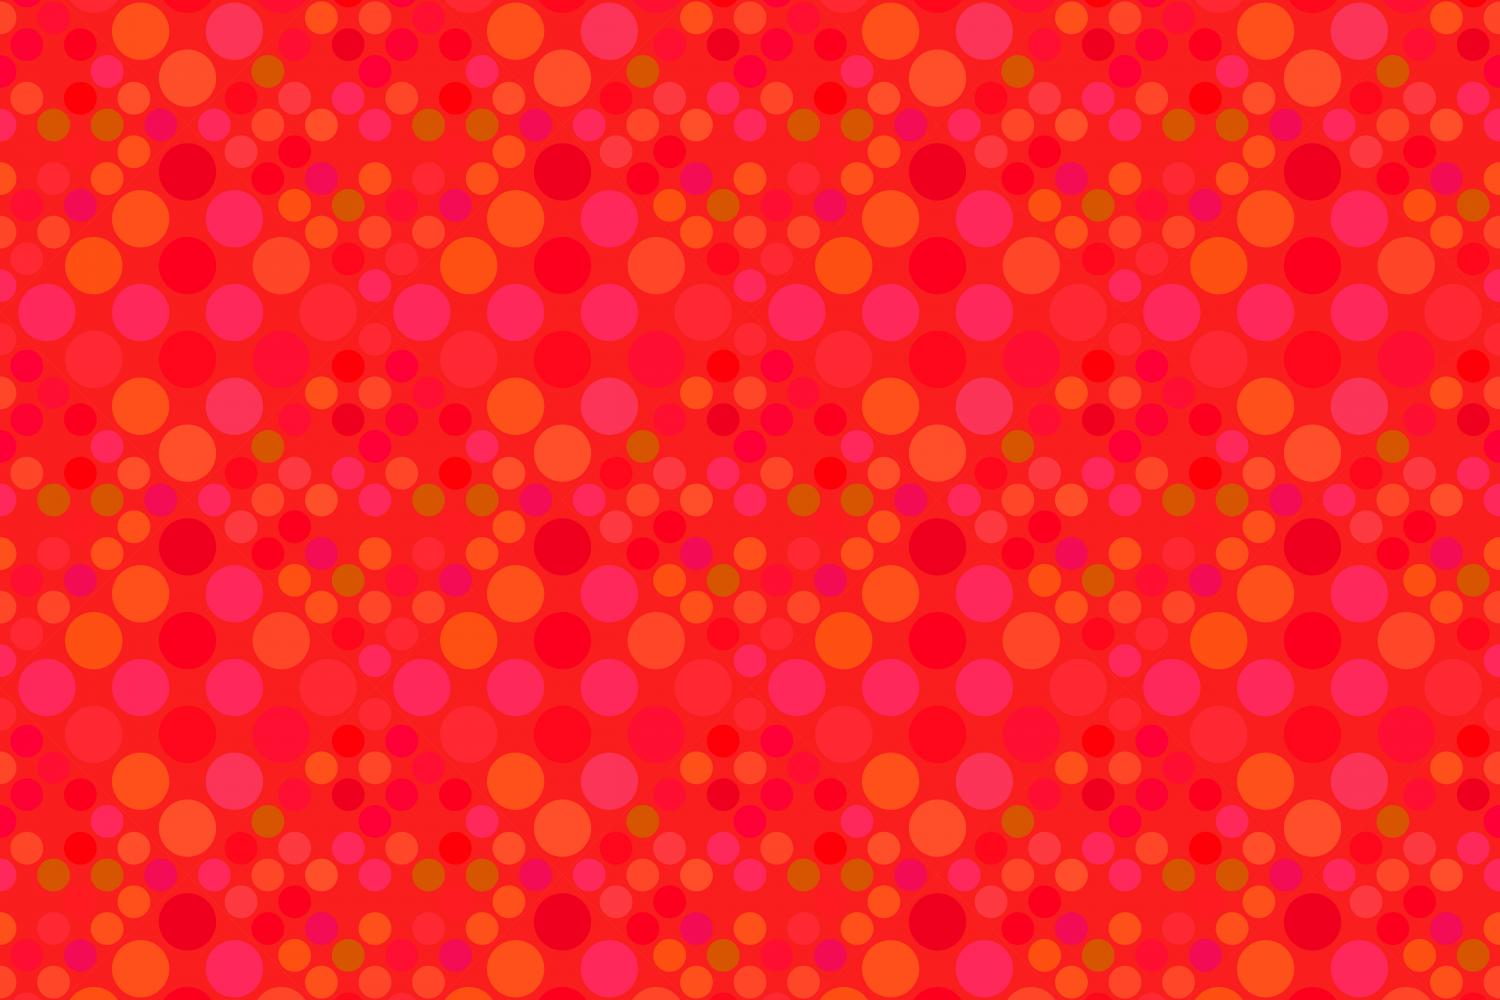 24 Seamless Red Dot Patterns example image 19